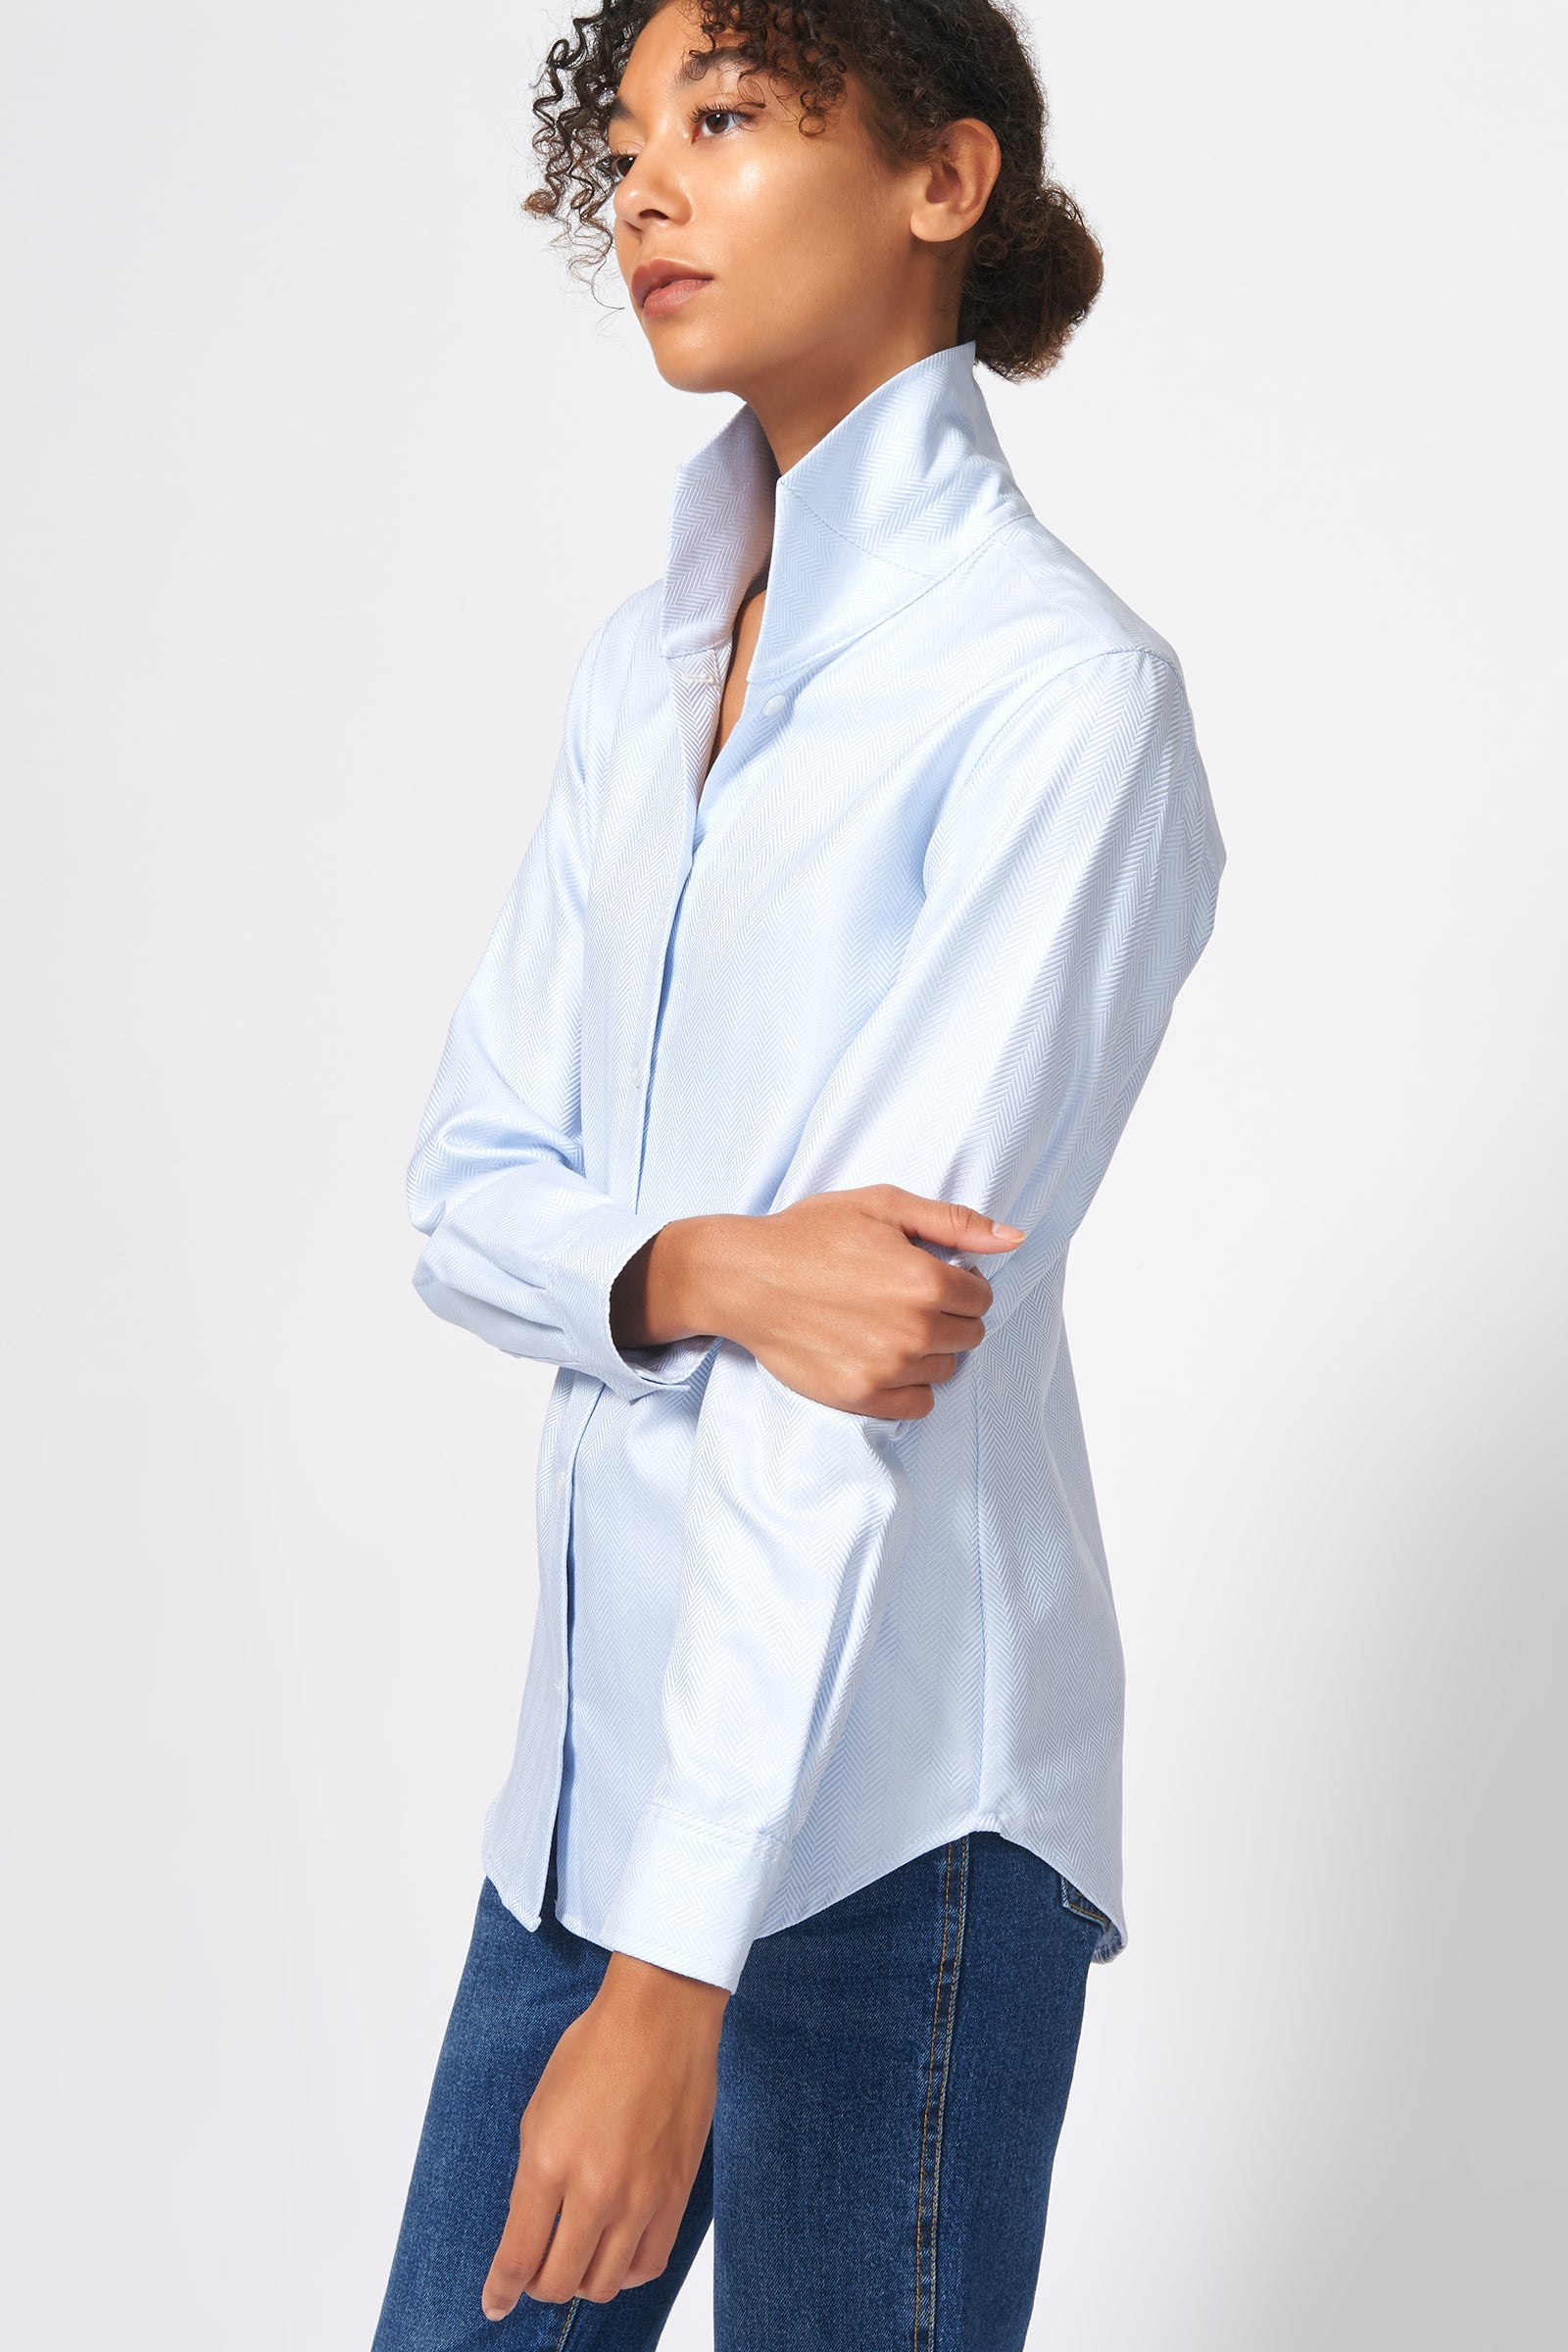 Kal Rieman Ginna Tailored Shirt in French Blue Herringbone on Model Side View